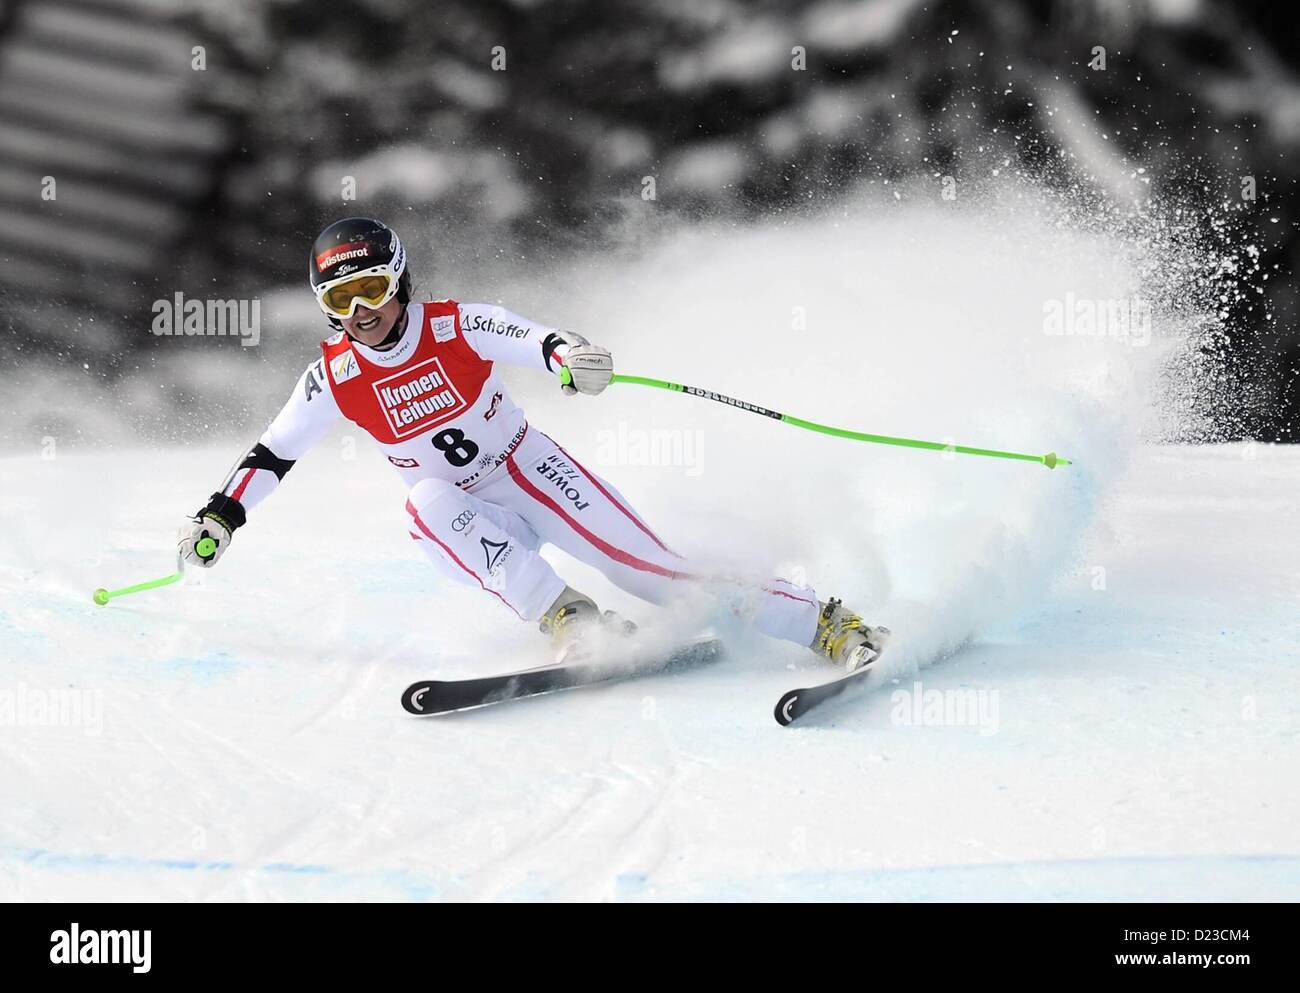 St Anton, Austria. 13th Jan, 2013.   Ski Alpine FIS World Cup Super G for women Elisabeth Goergl AUT - Stock Image